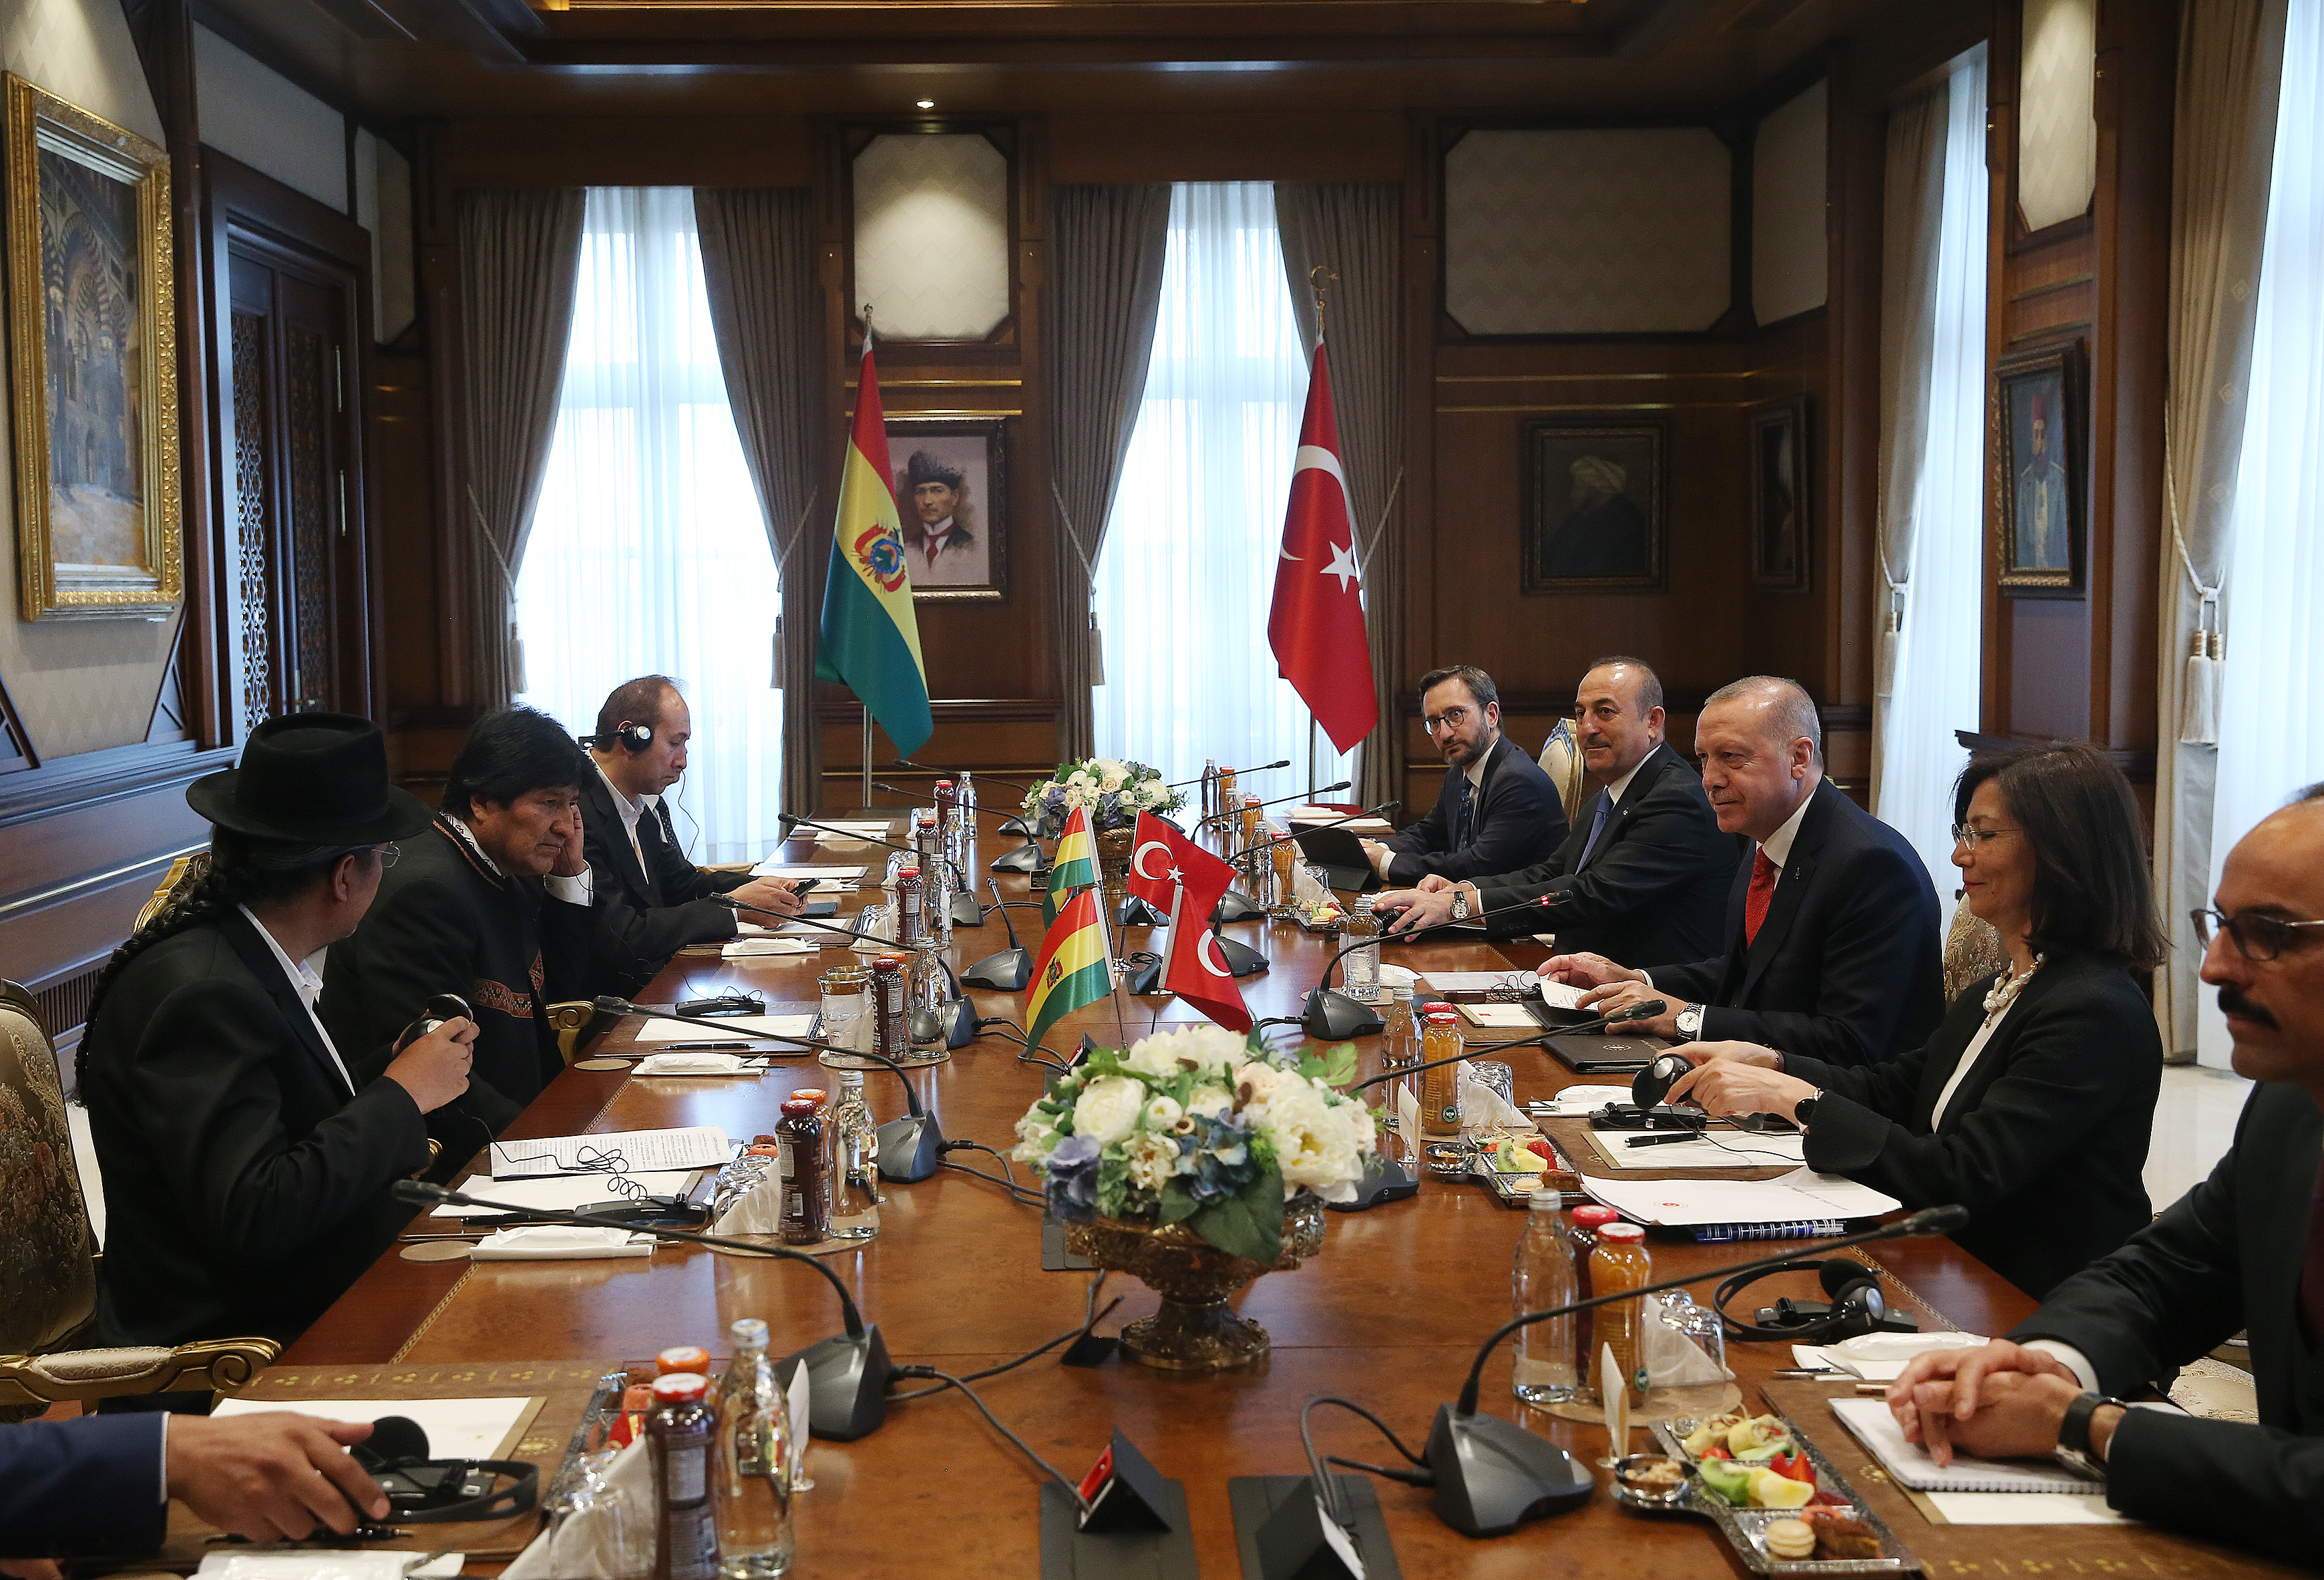 President Erdoğan and President Evo Morales Ayma of the Plurinational State of Bolivia held a joint press conference at the Presidential Complex